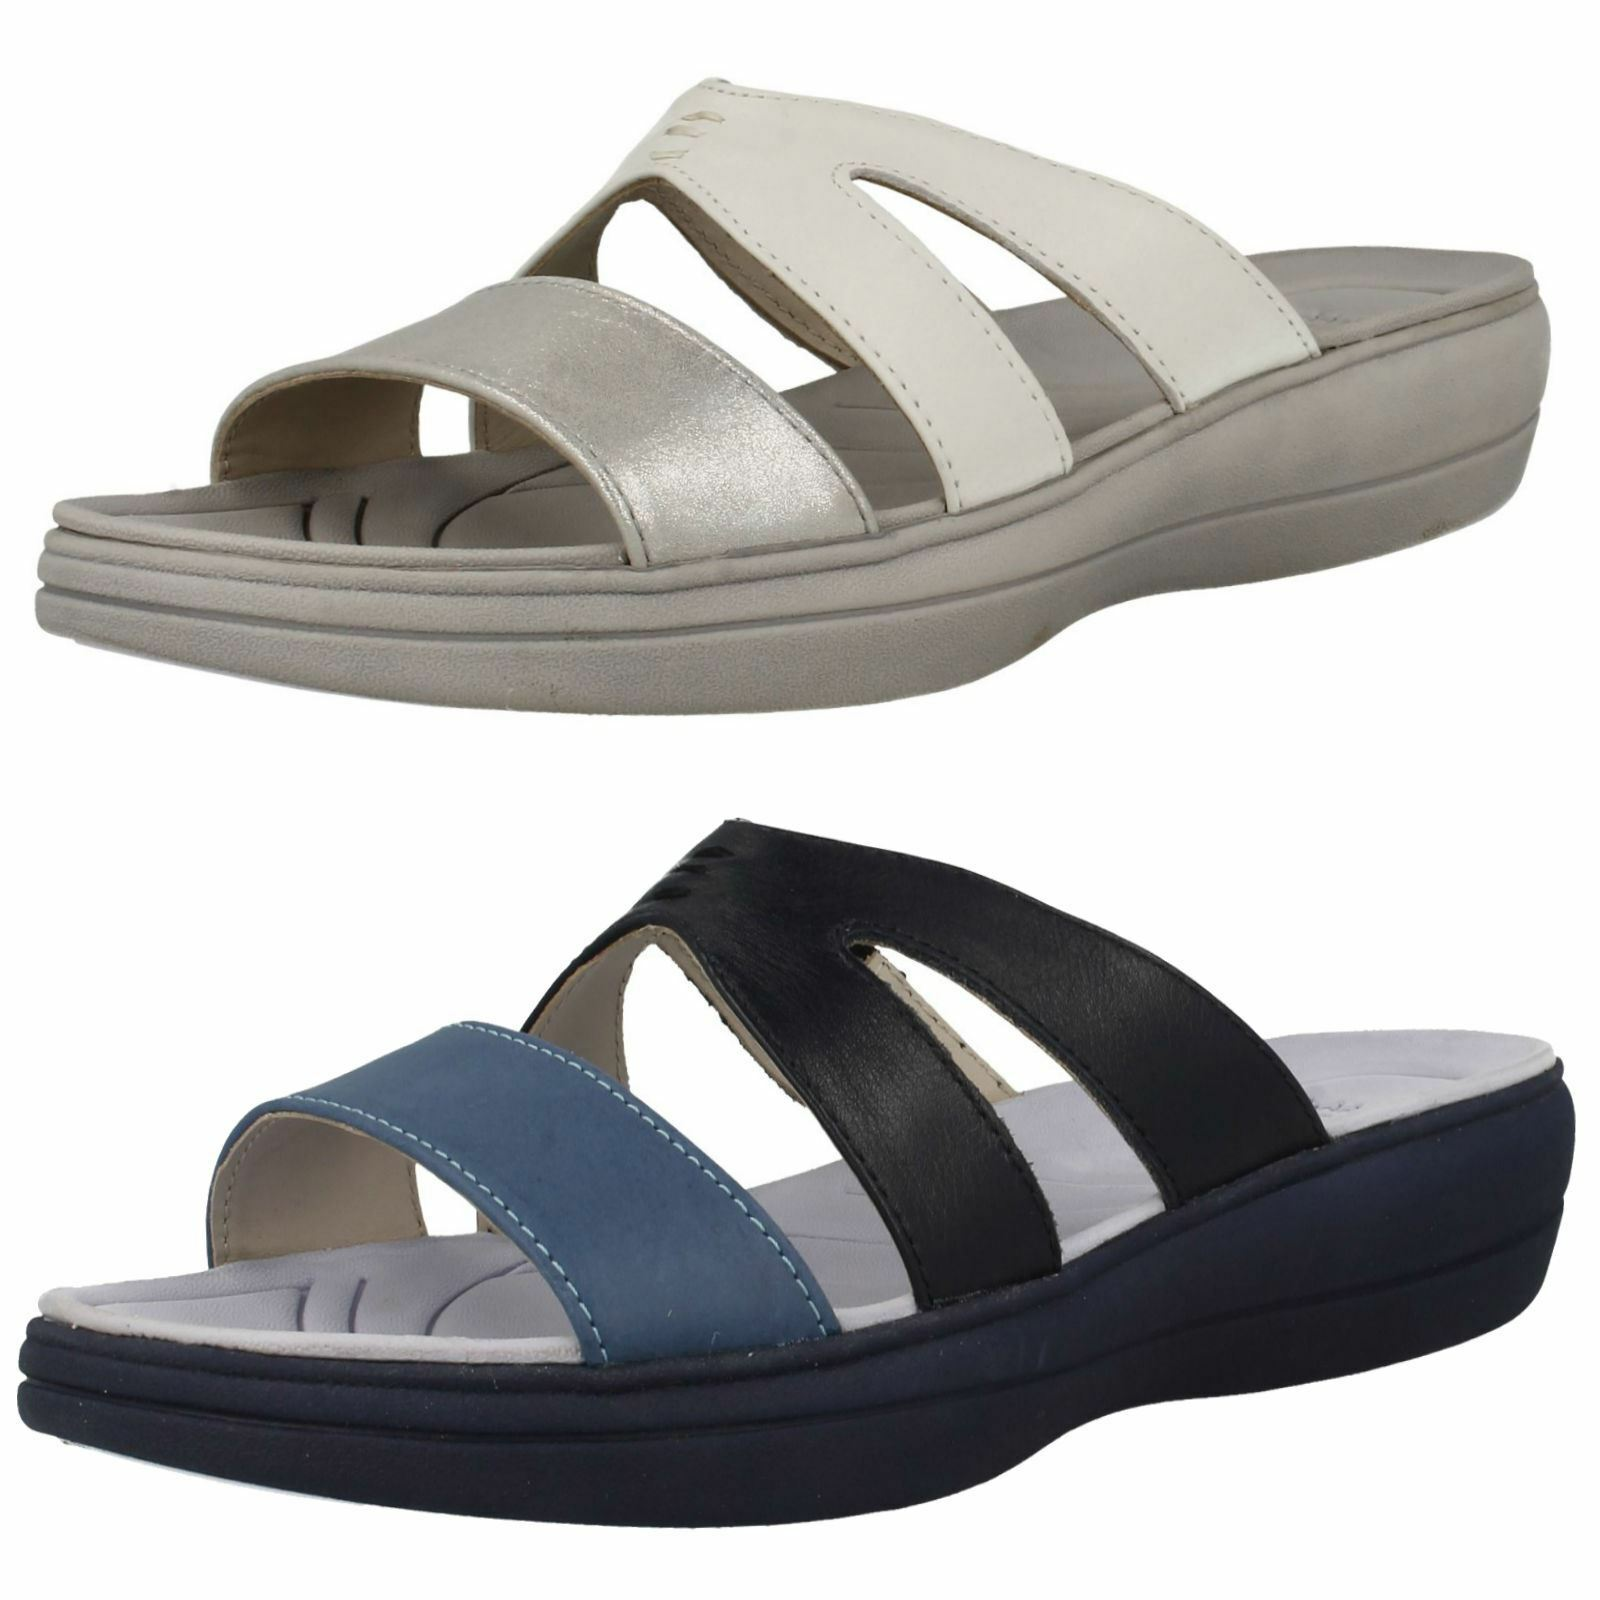 Último gran descuento Ladies Padders Slip On Open Toe Leather Mule Sandals Charlie